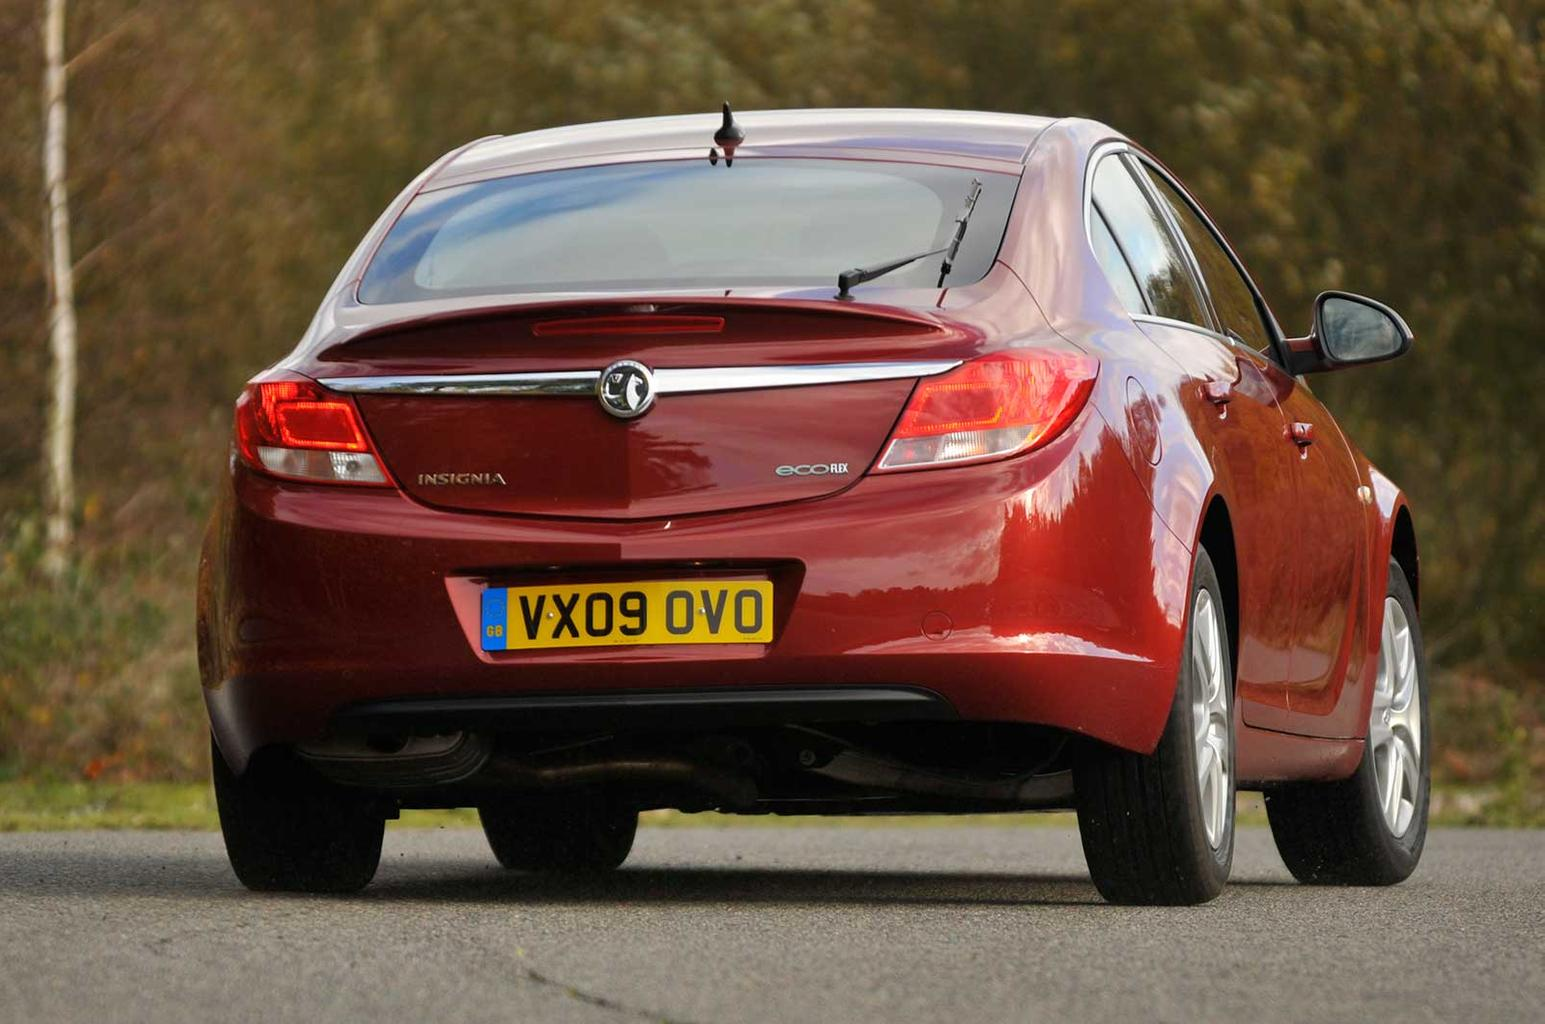 Used car of the week: Vauxhall Insignia